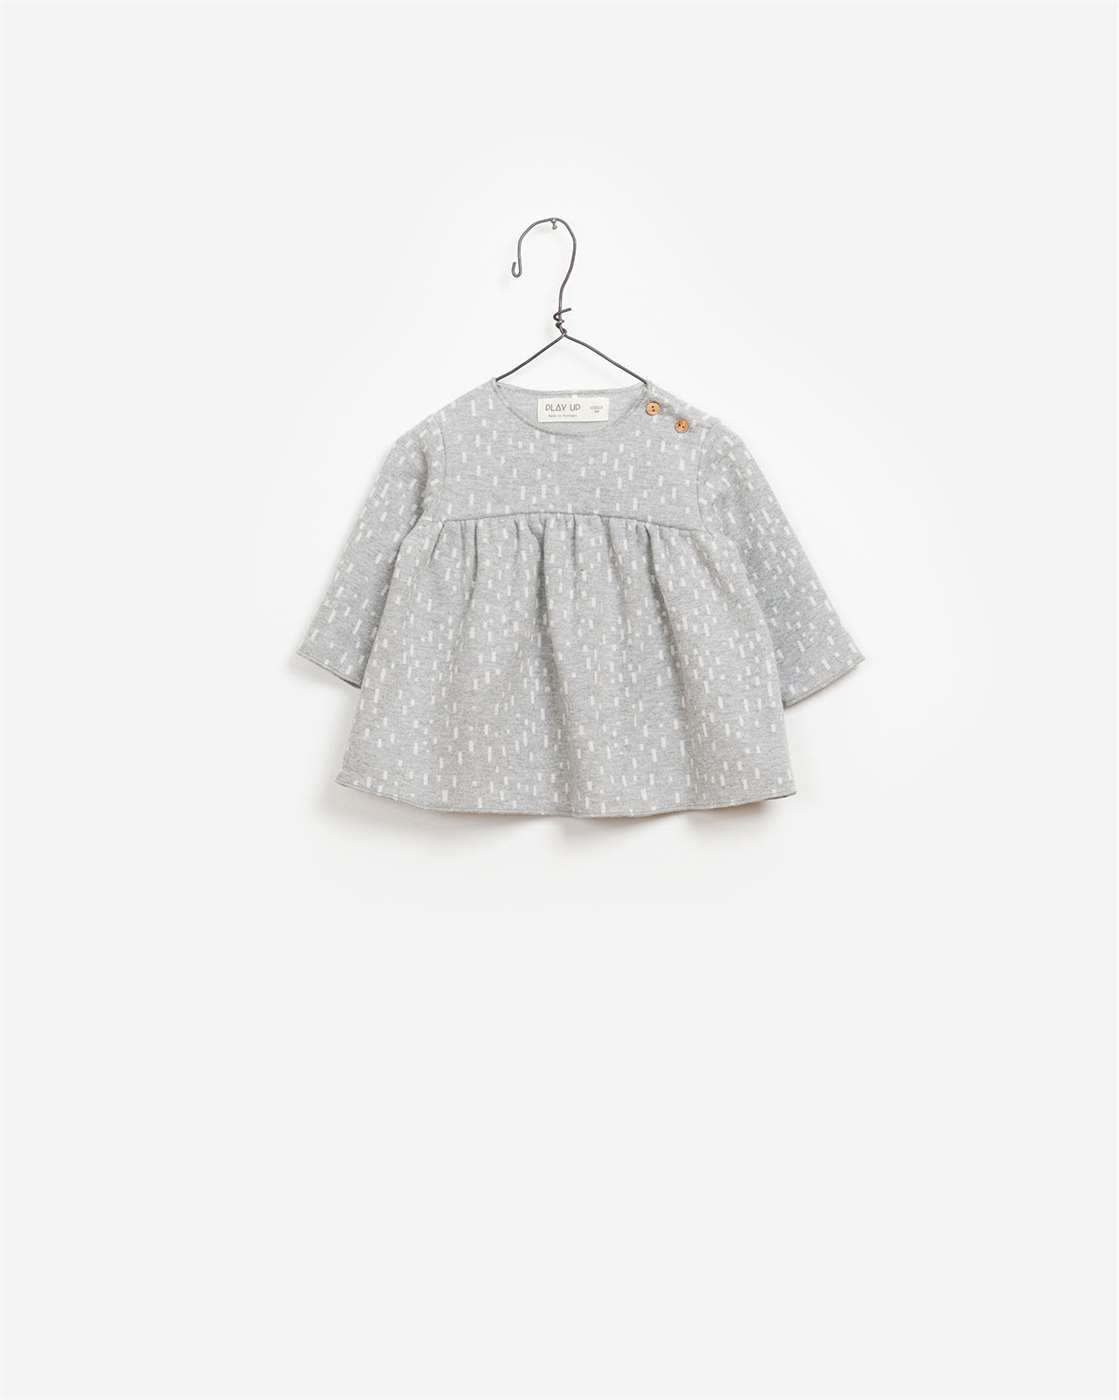 BeeBoo|BeeBoo PlayUp vêtement bébé baby cloth blouse Jacquard gris grey